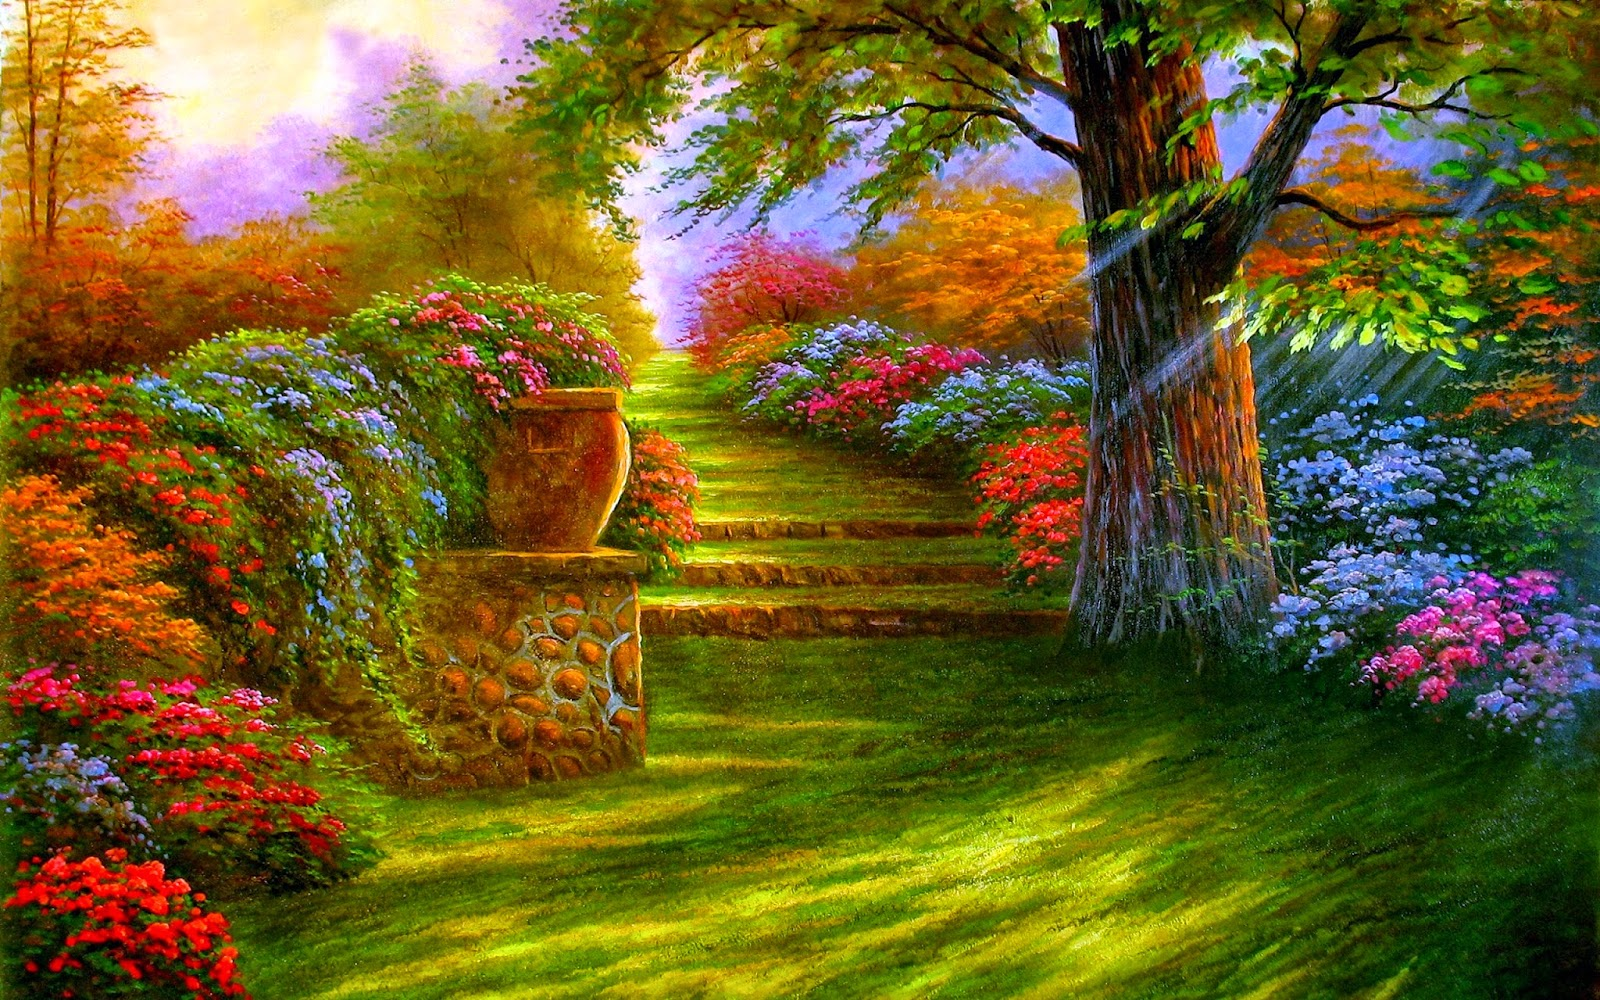 Colorful Garden New HD Wallpapers - Wallpapers